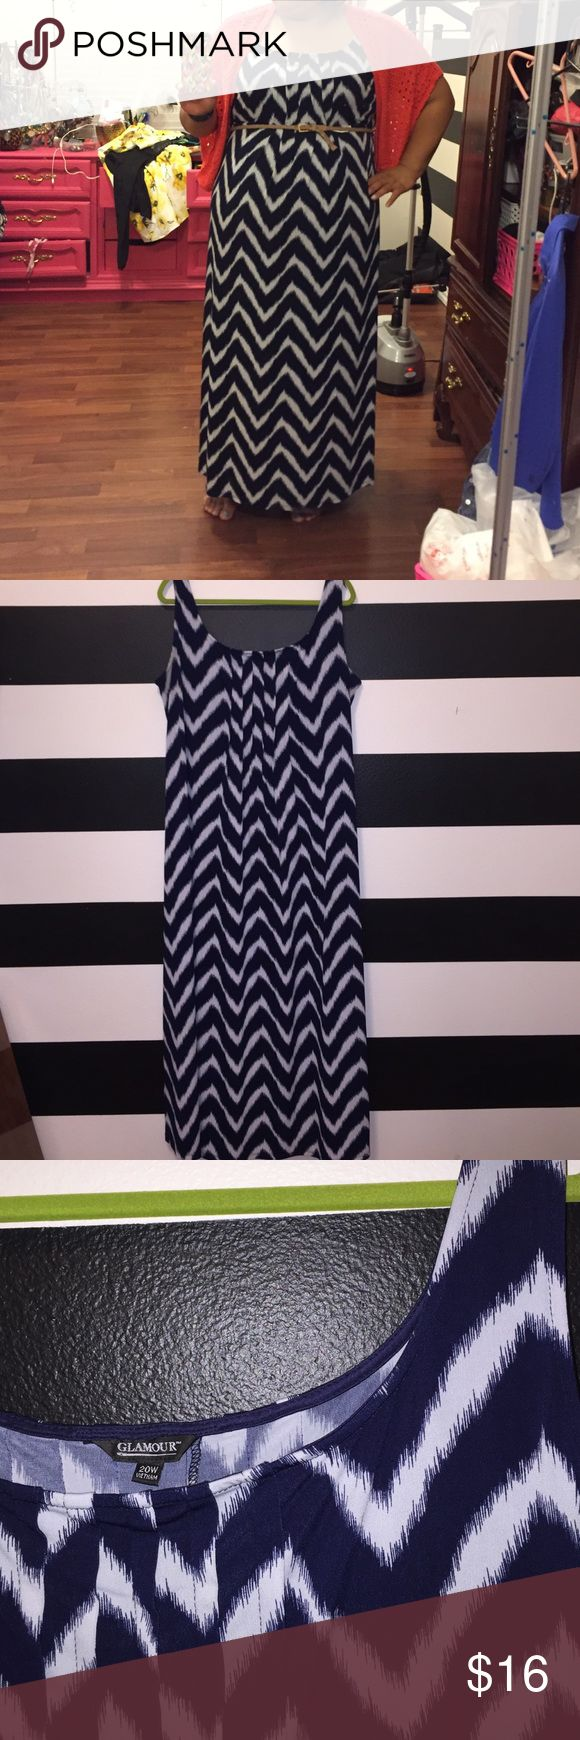 Plus size chevron maxi dress Size 20W--navy blue and white chevron dress, in great condition, sleeveless, Please note that cardigan and belt not included, cardigan is for sale on a separate listing Glamour & Co. Dresses Maxi